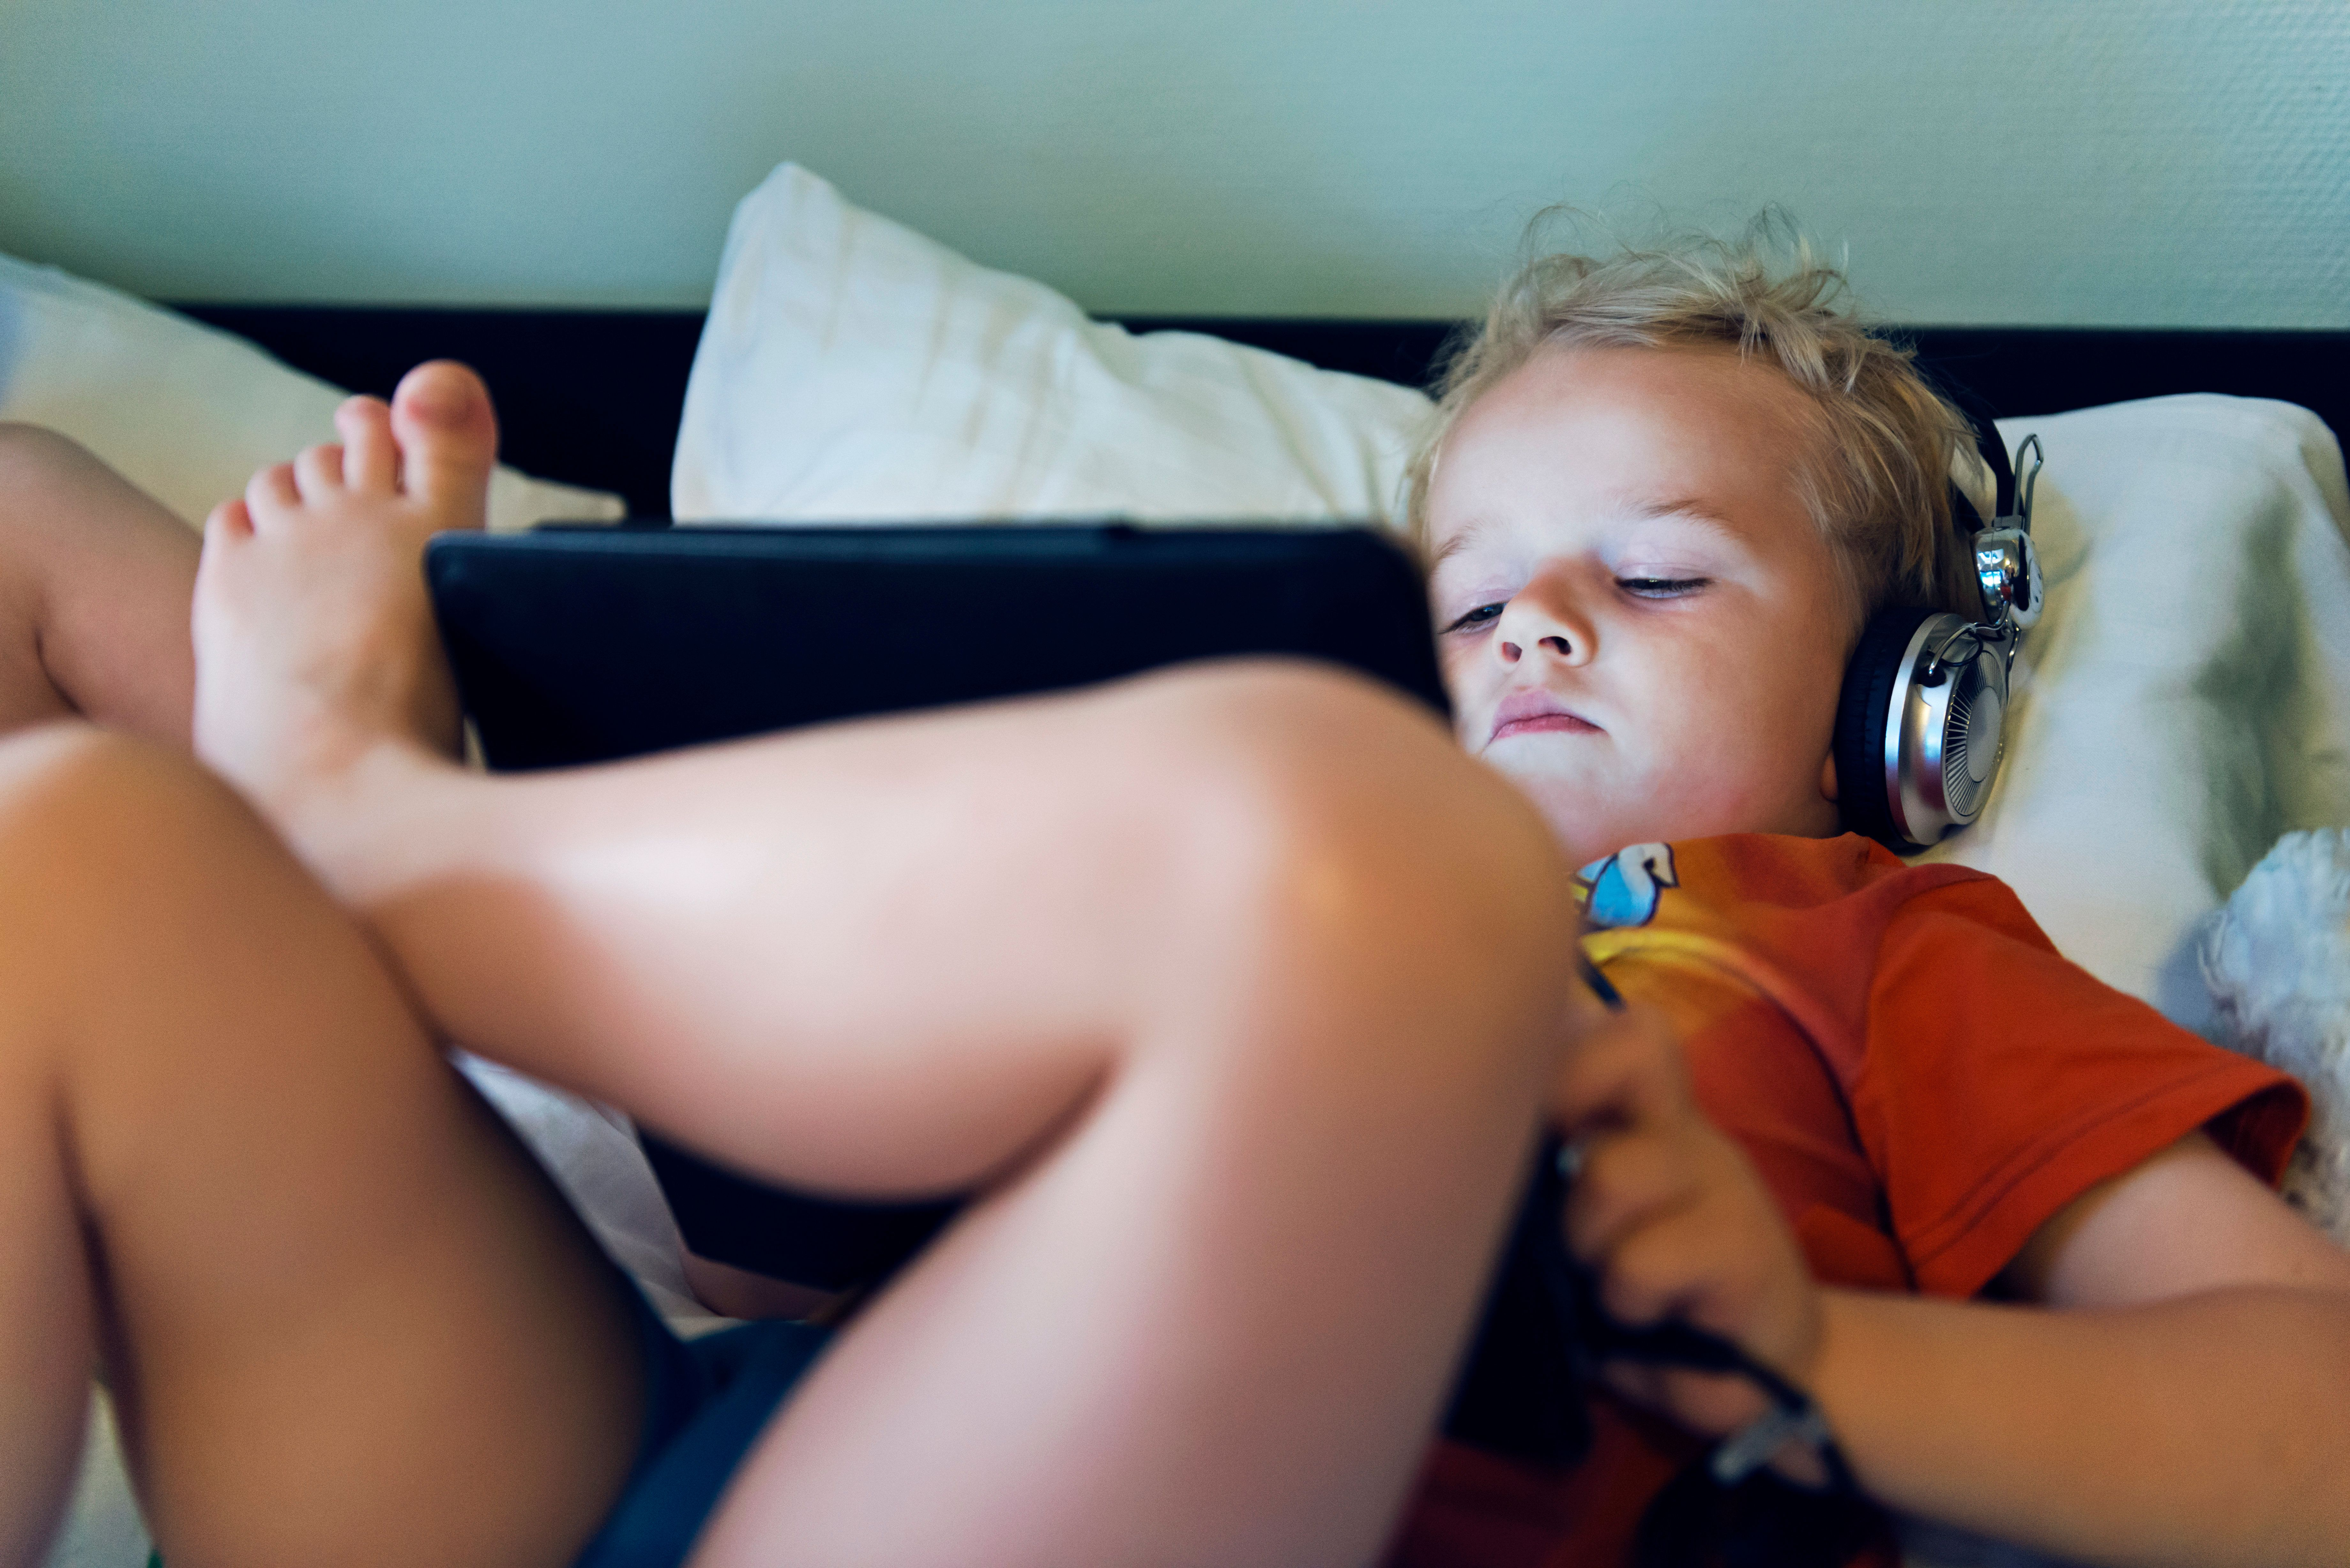 Boy wears headphones connected to a digital tablet while lying in bed. He looks at the content on the screen. It is night and he looks happy.  He could be streaming a movie, browsing the internet or playing a game.